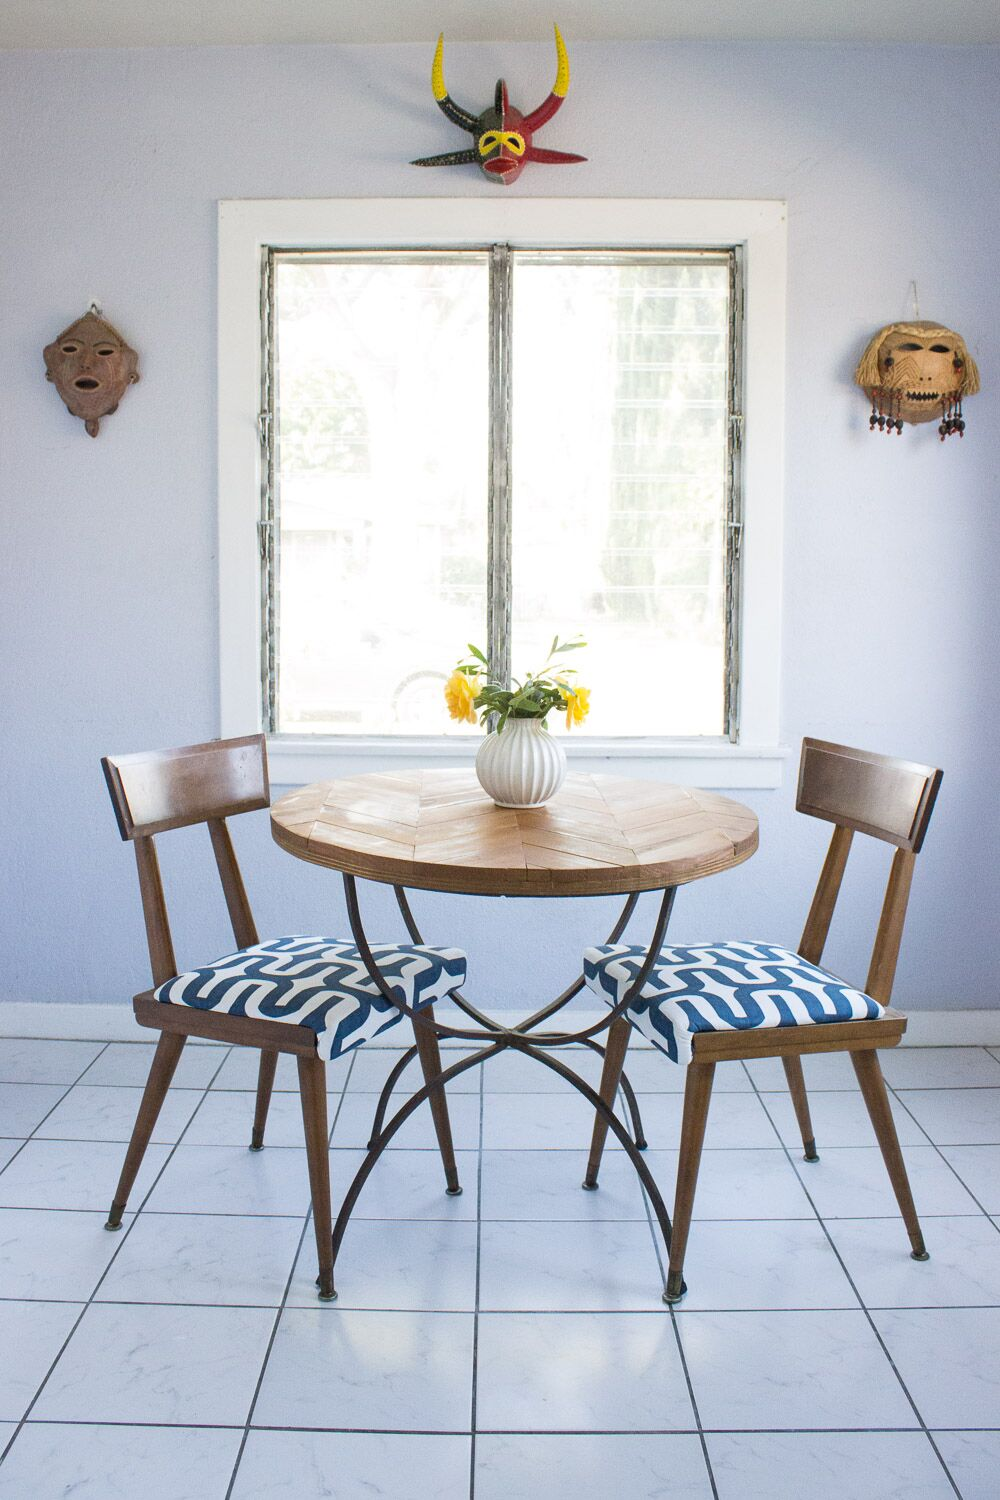 staging breakfast nook.jpg